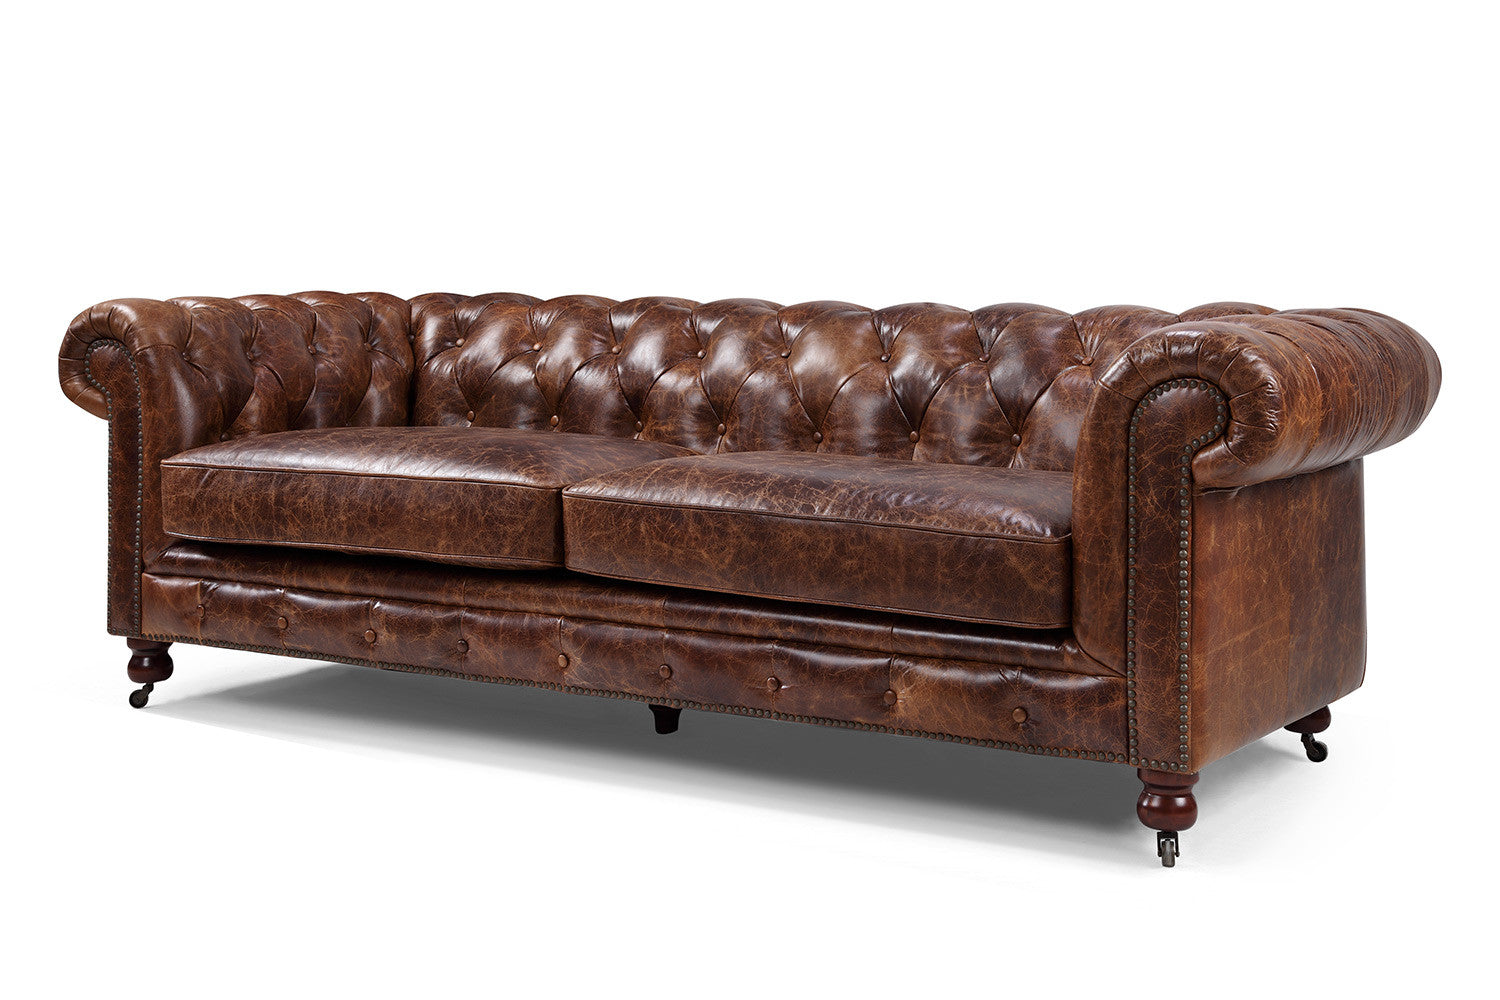 Canap chesterfield en cuir kensington rose moore - Canape chesterfield but ...